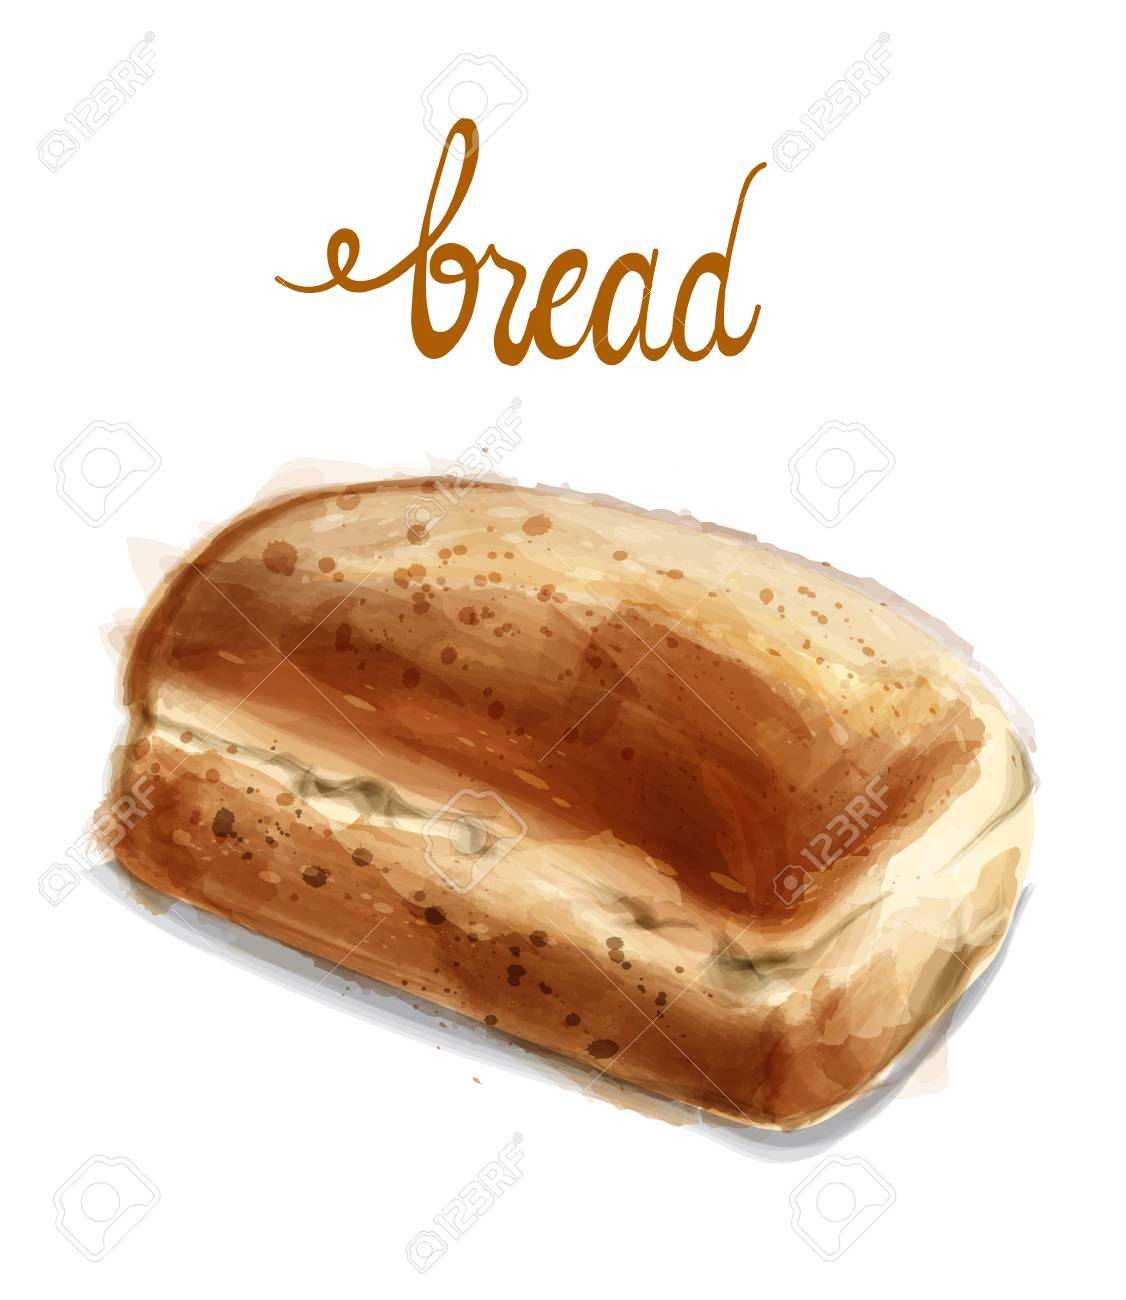 Watercolor Bread Vector Illustration Vintage Homemade Fresh Royalty Free Cliparts Vectors And Stock Illustration Image 123654137